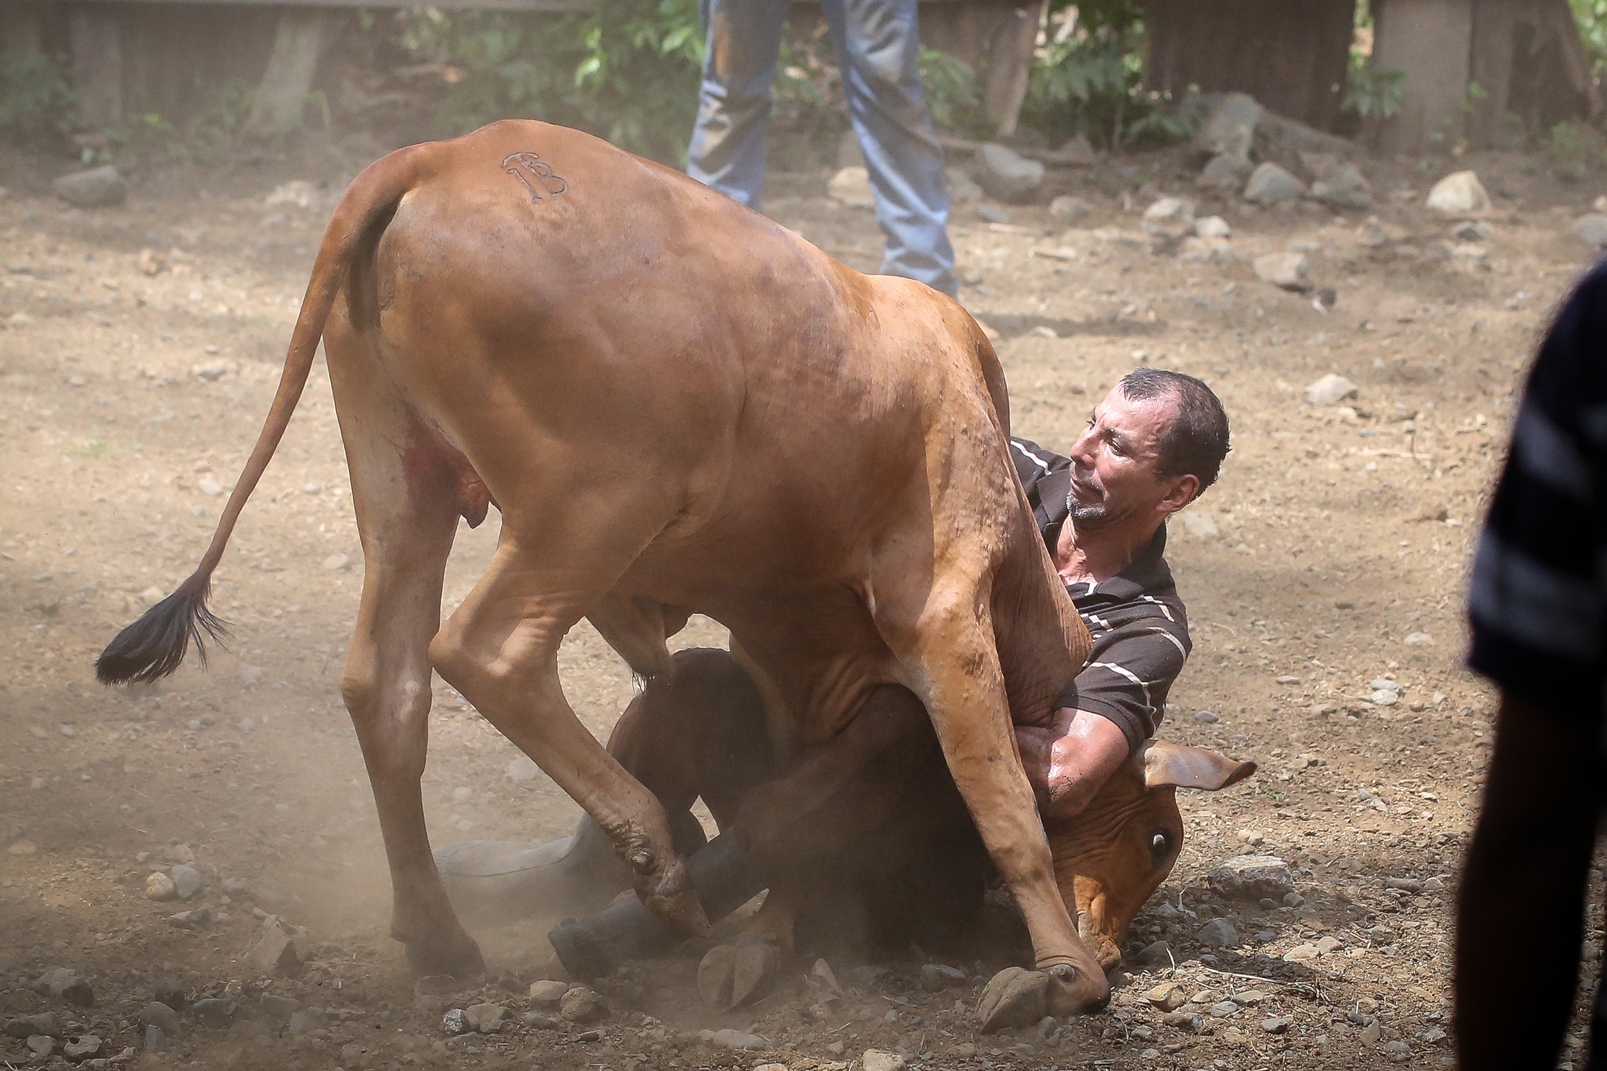 The pock-faced man attempts to wrestle a bull to the ground on his own.